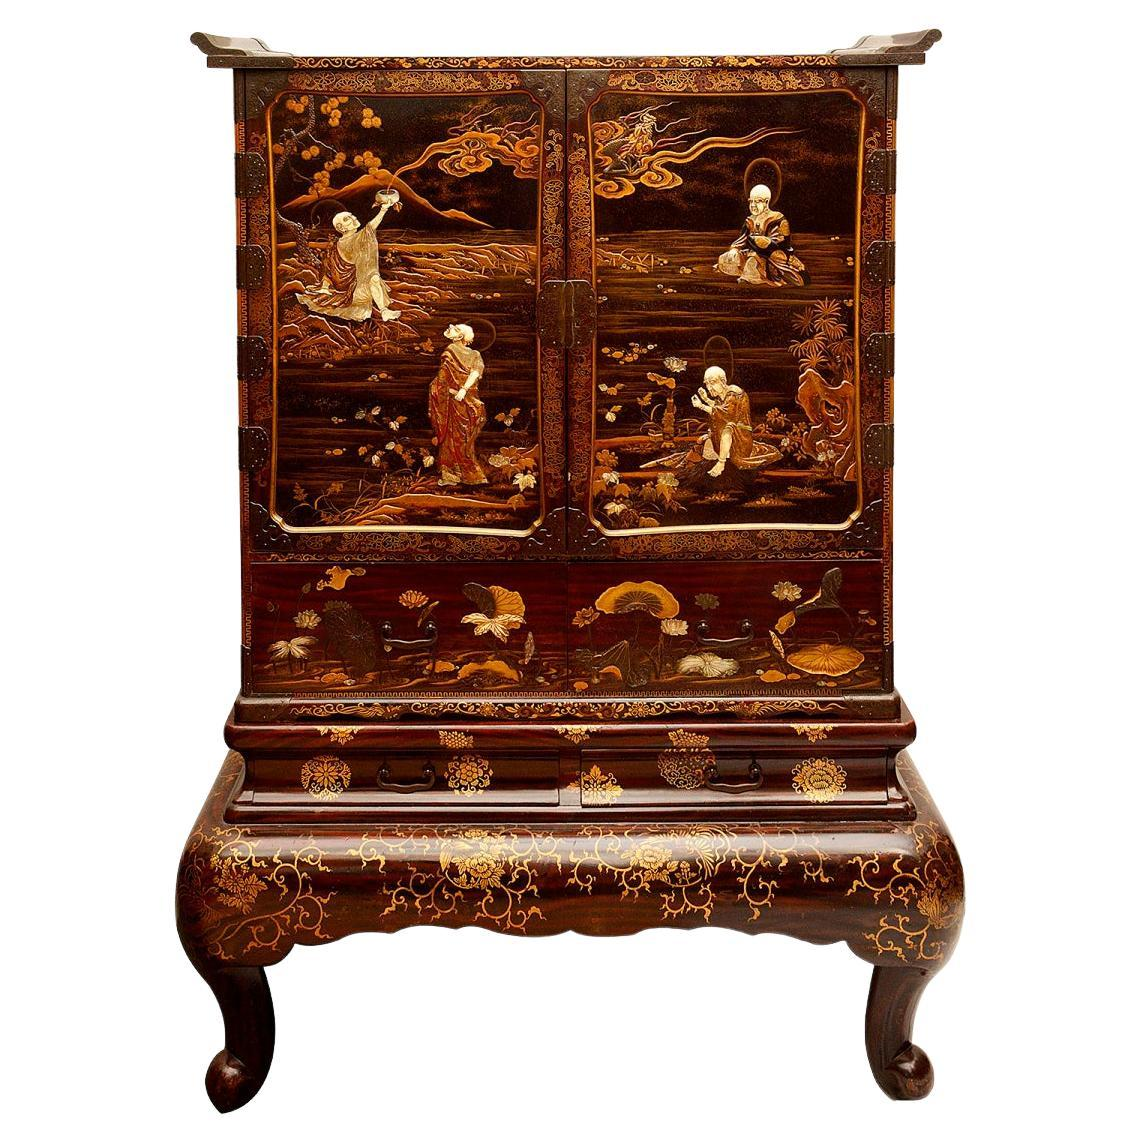 Japanese Lacquer Meiji Period Cabinet on Stand, circa 1890